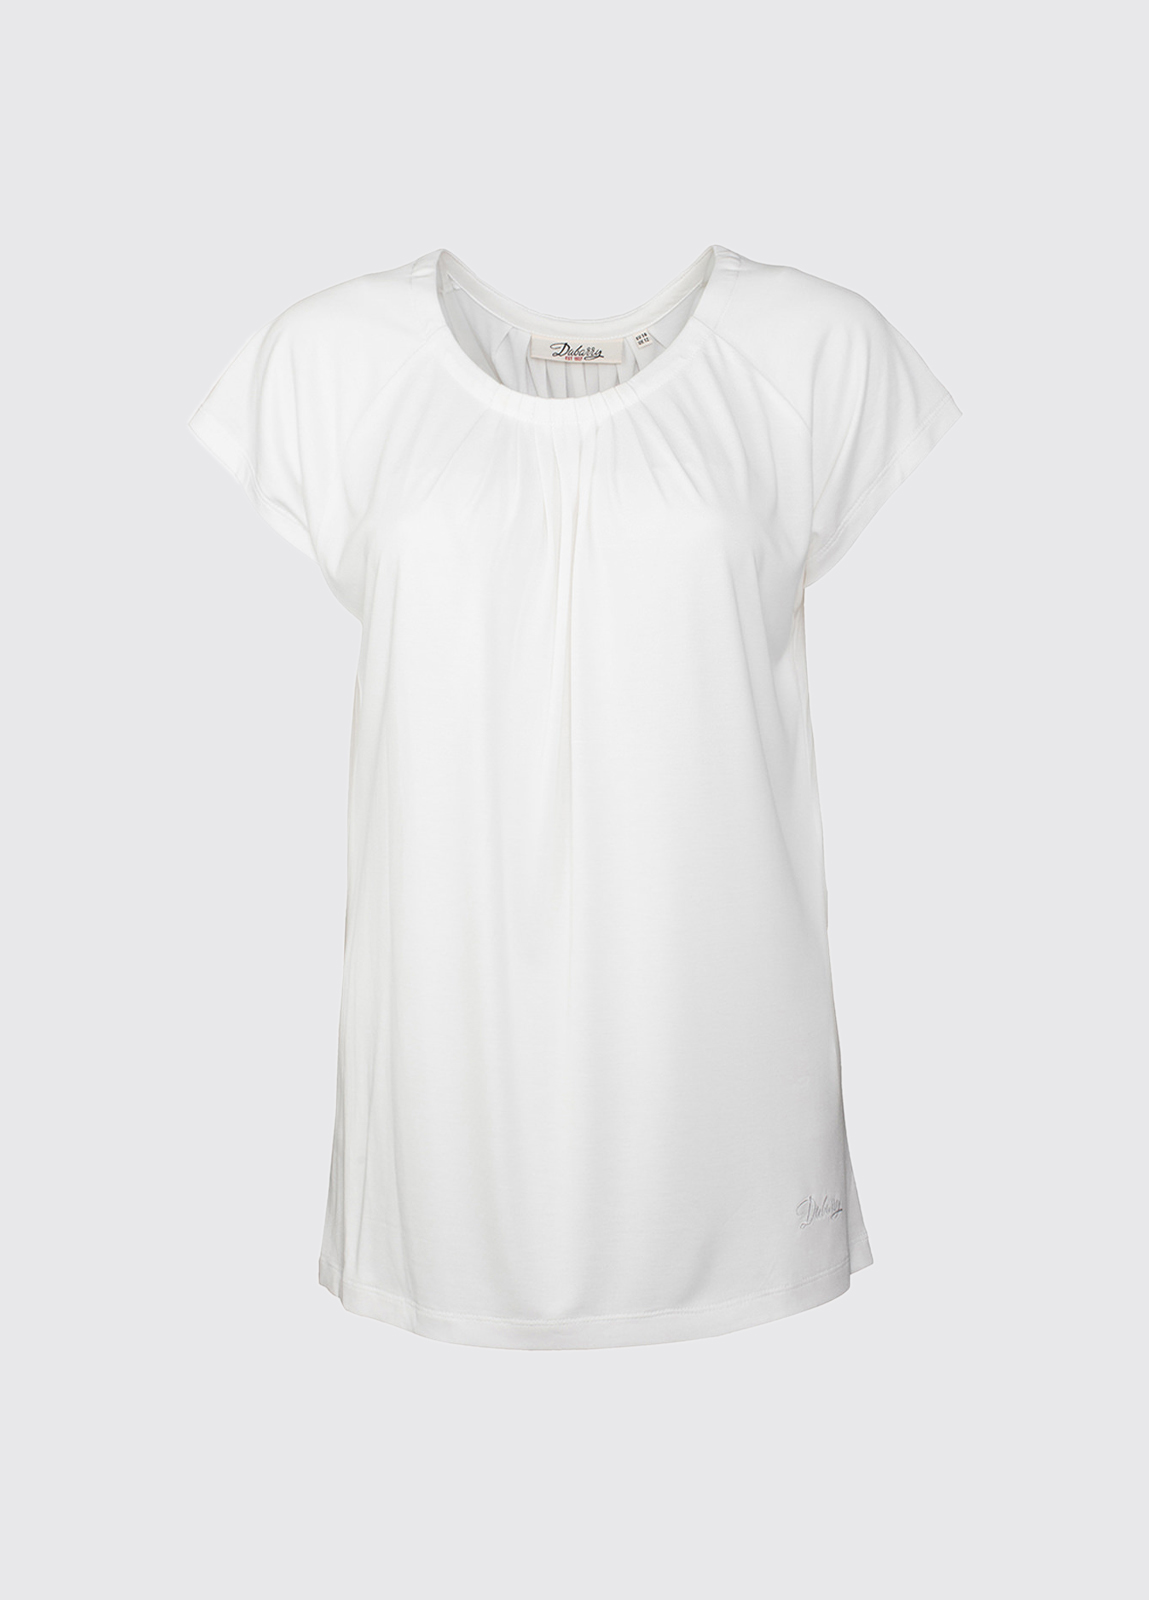 Quilty ladies top - White